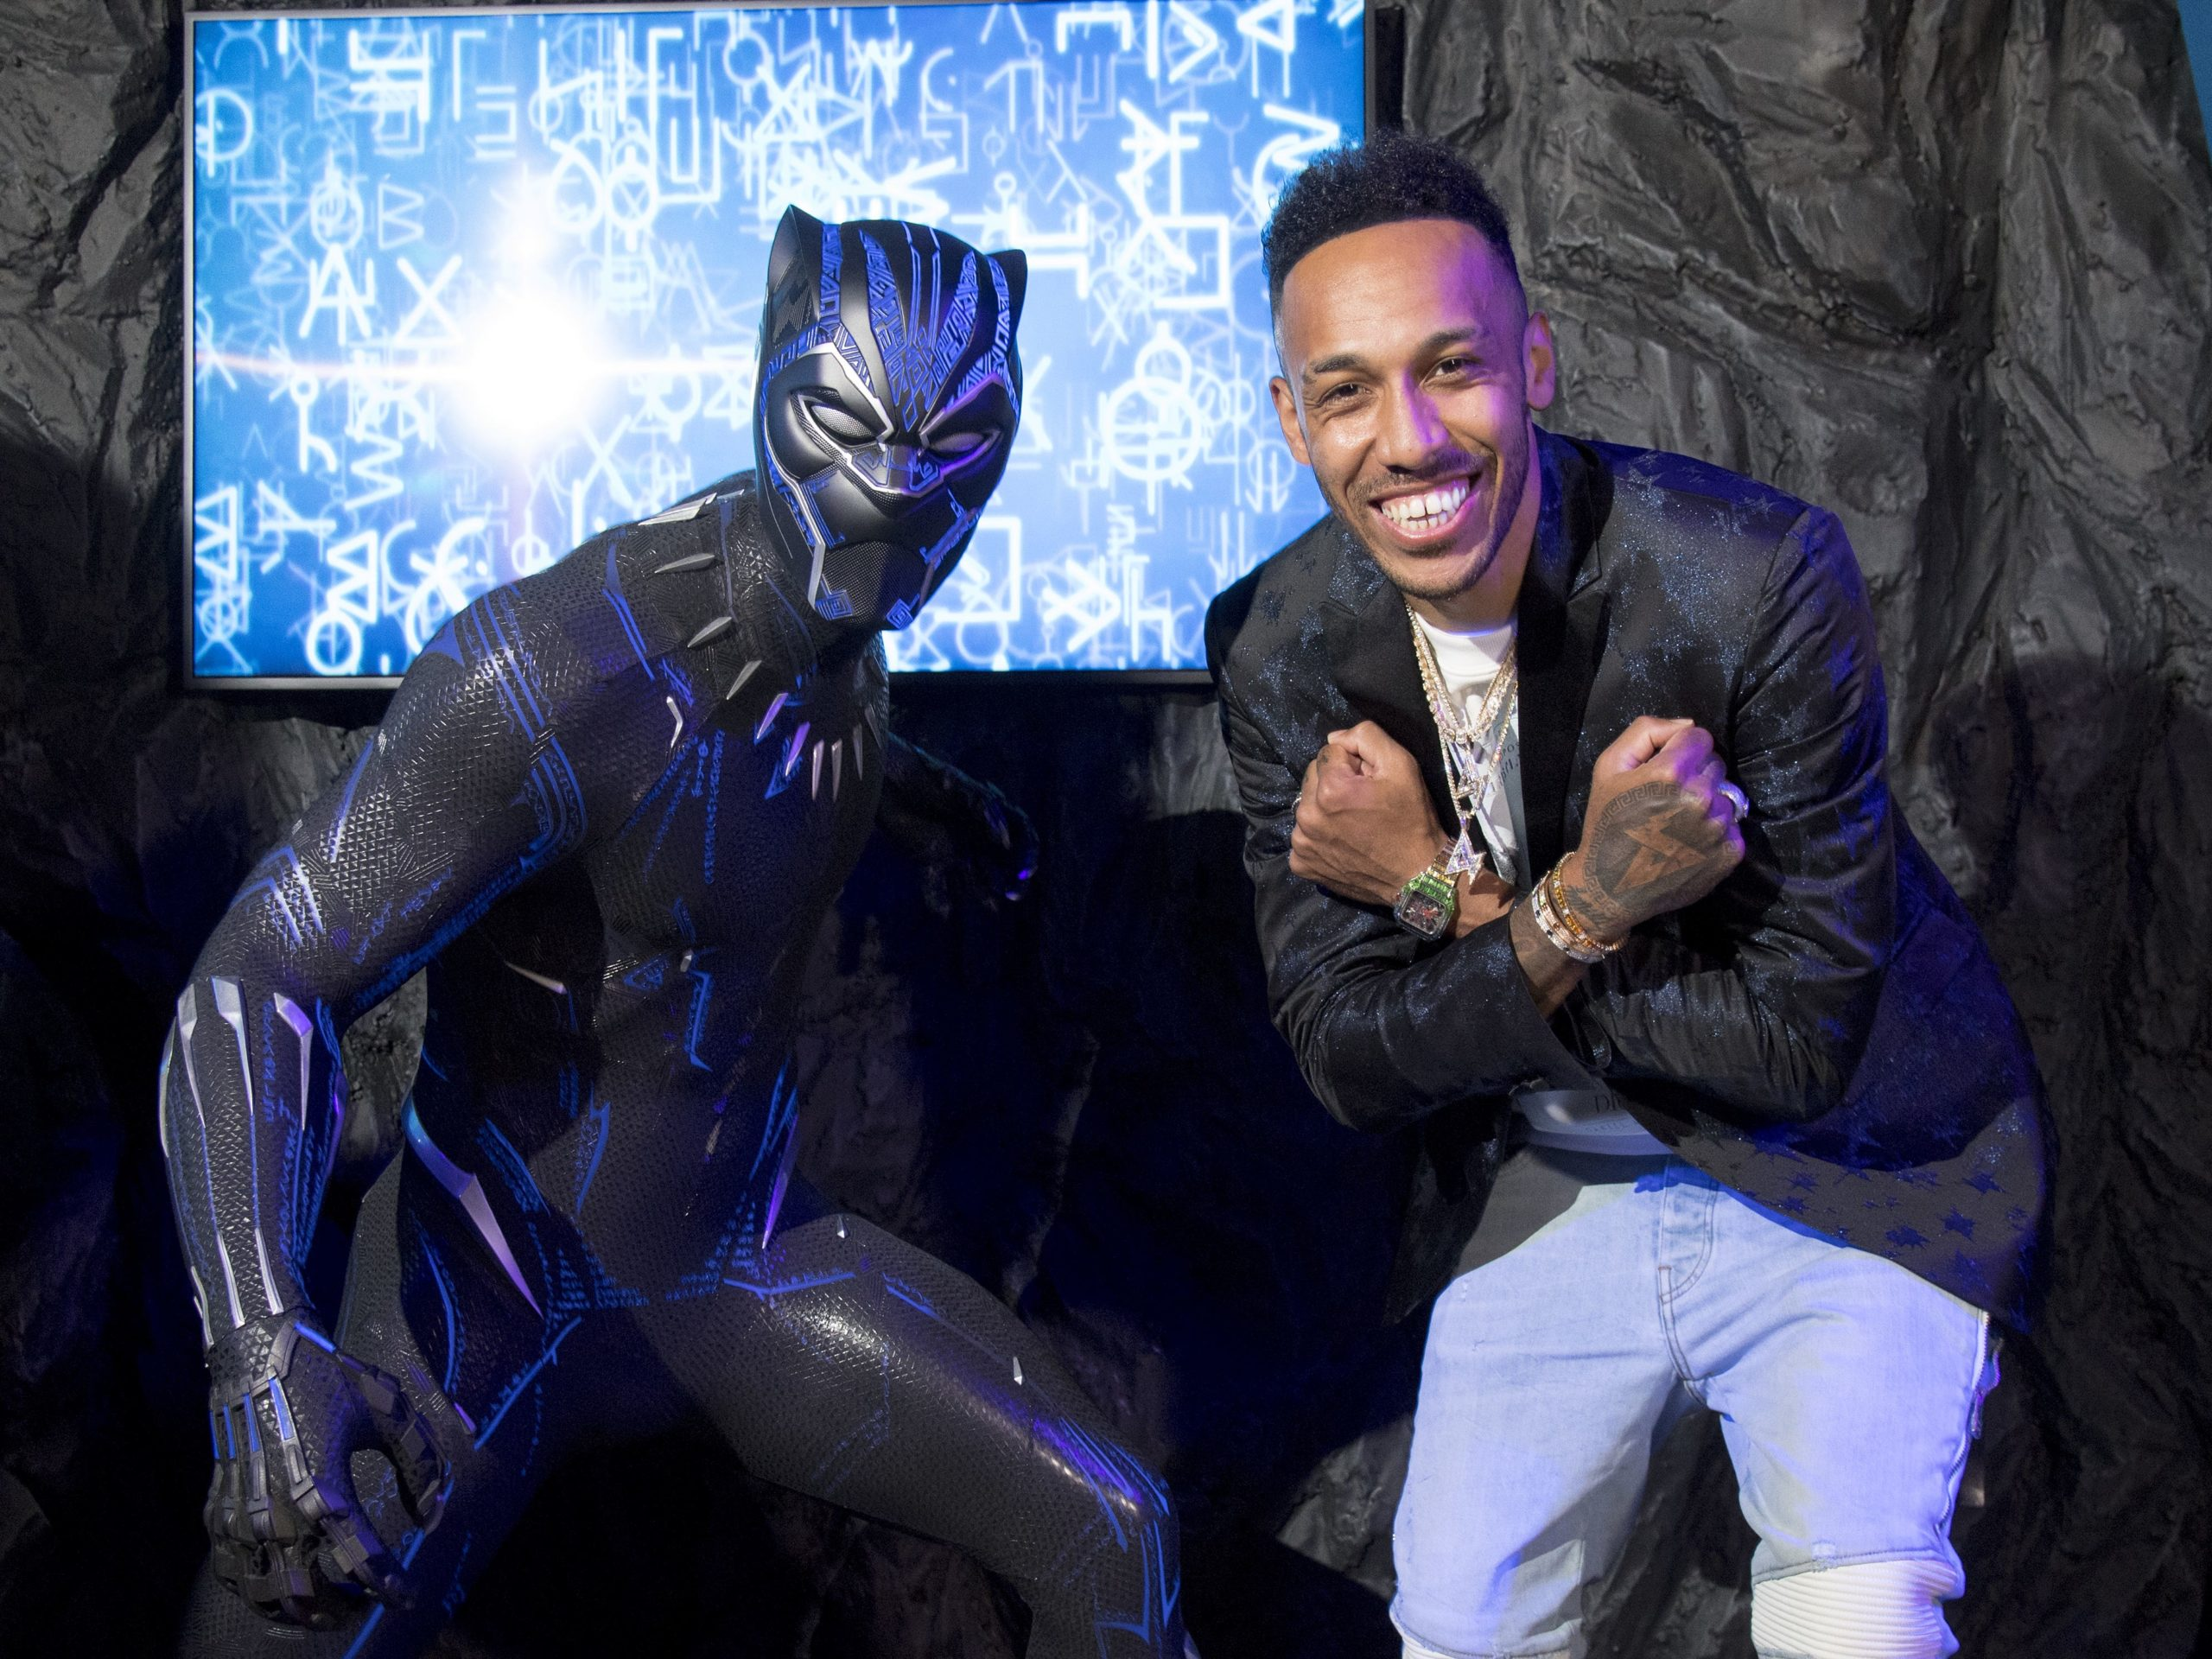 Madame Tussauds unveils Black Panther waxwork with the help of a celebrity fan